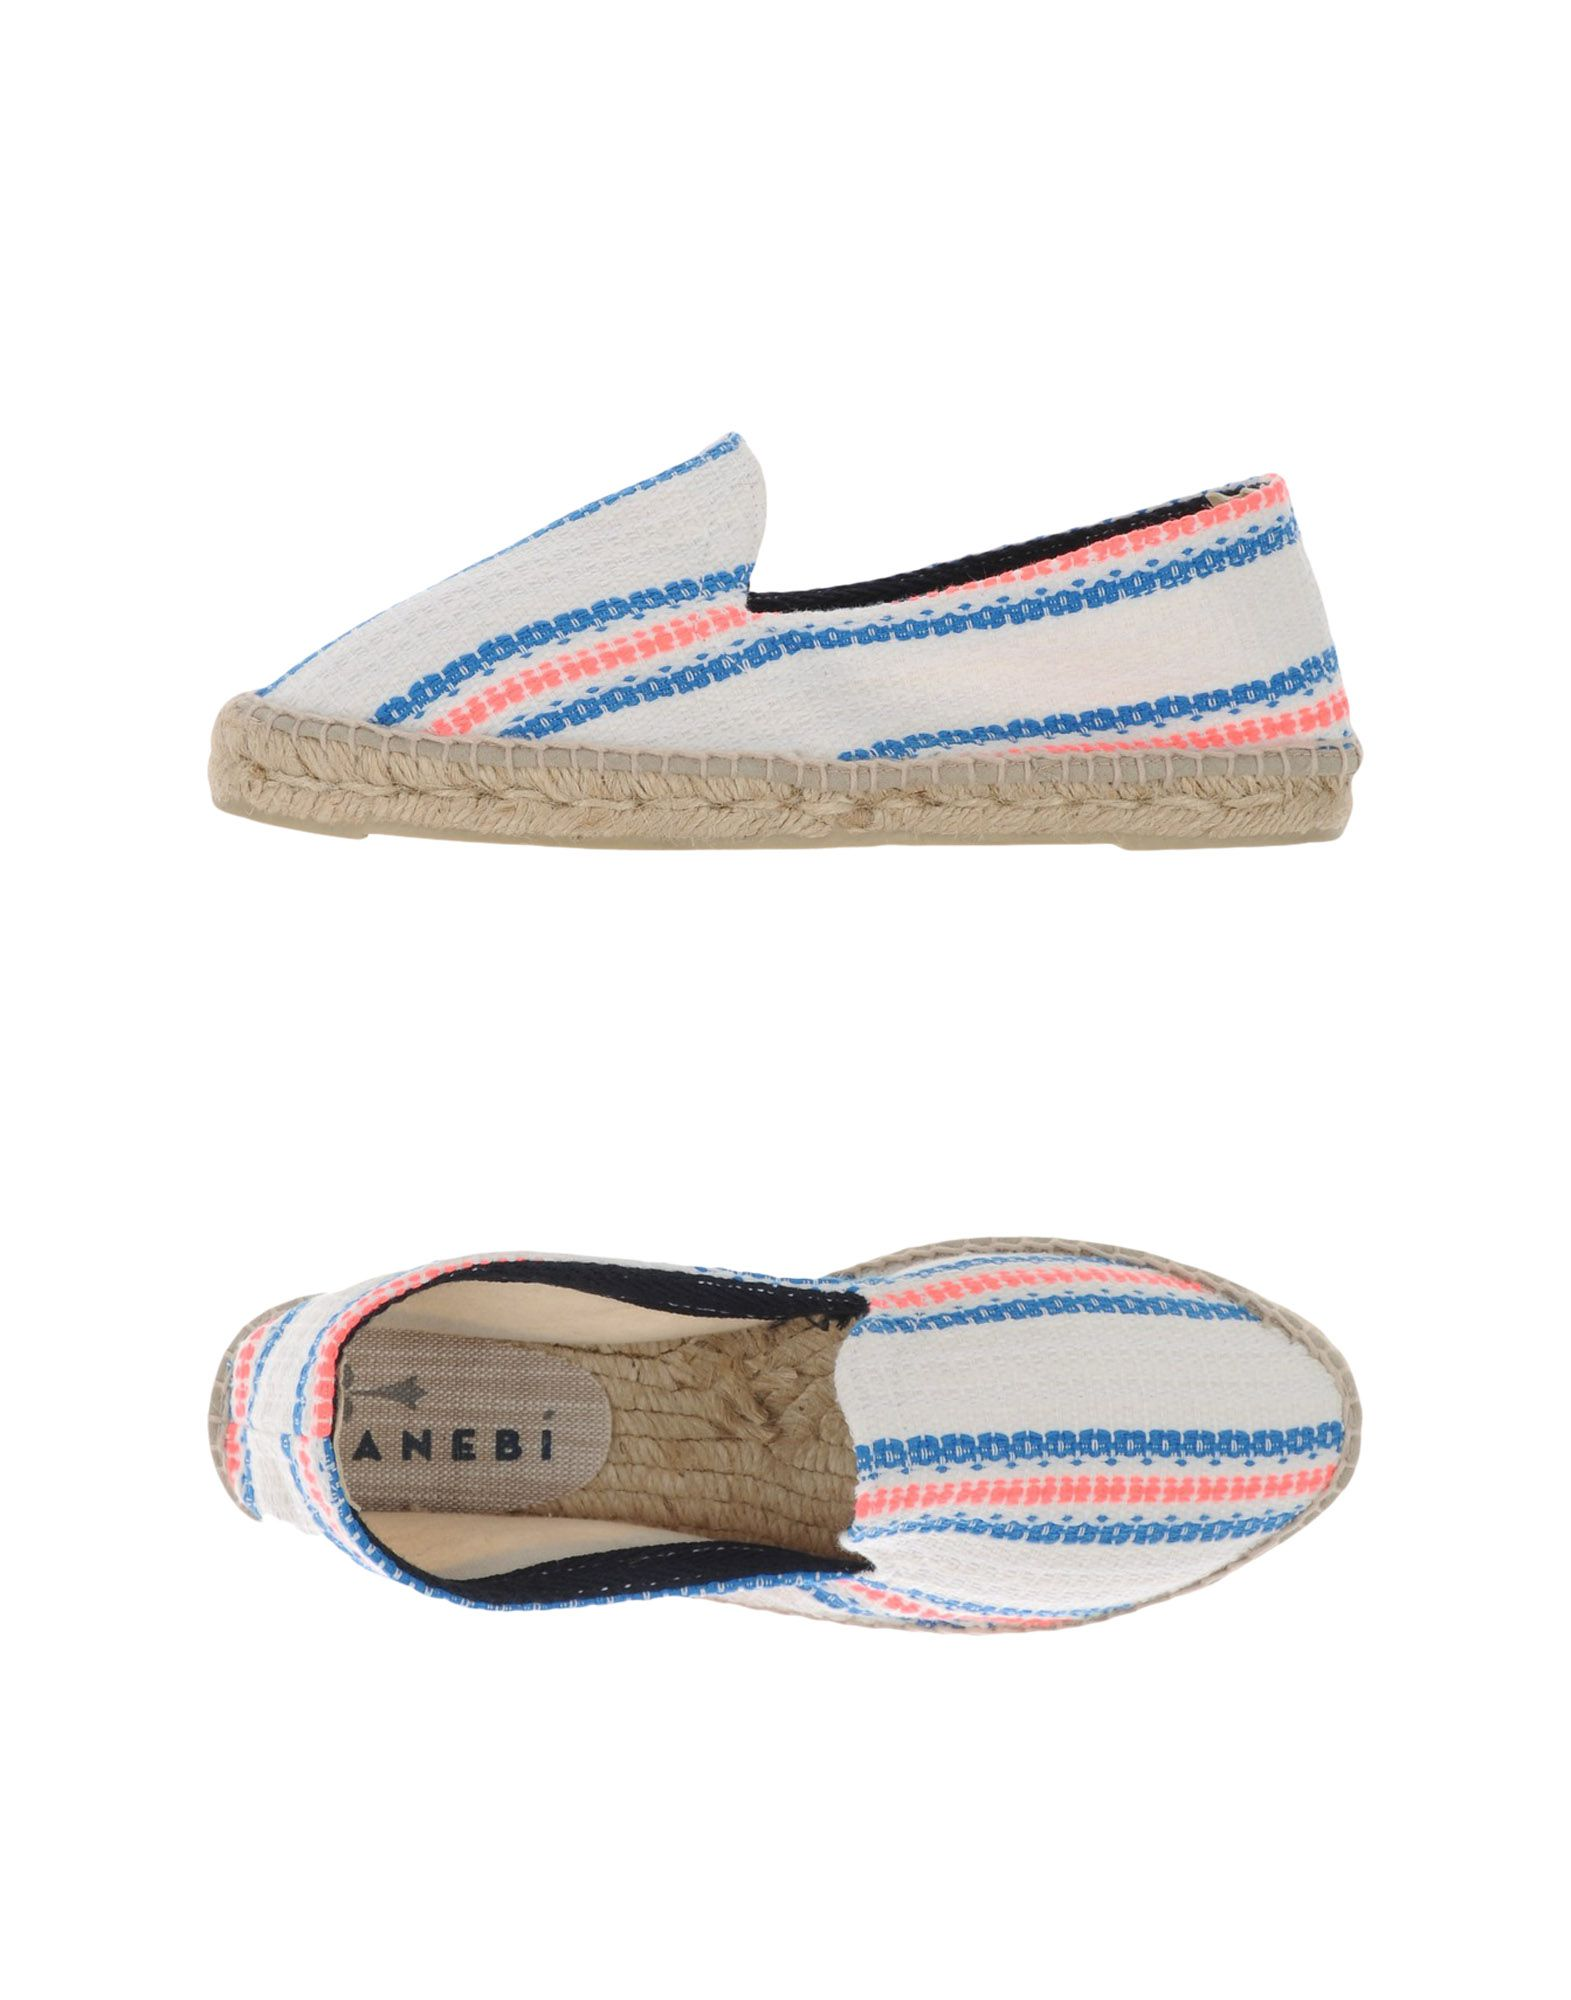 Manebí  Espadrilles - Women Manebí Espadrilles online on  Manebí United Kingdom - 44925811NX 6de1d7